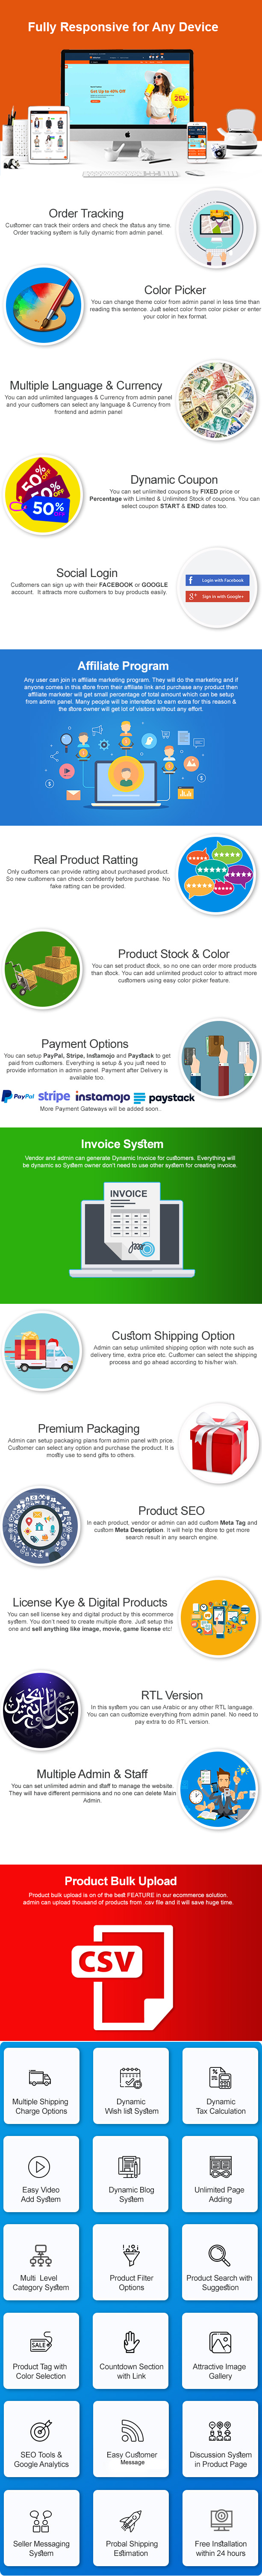 eCommerce - Responsive Ecommerce Business Management System - 3